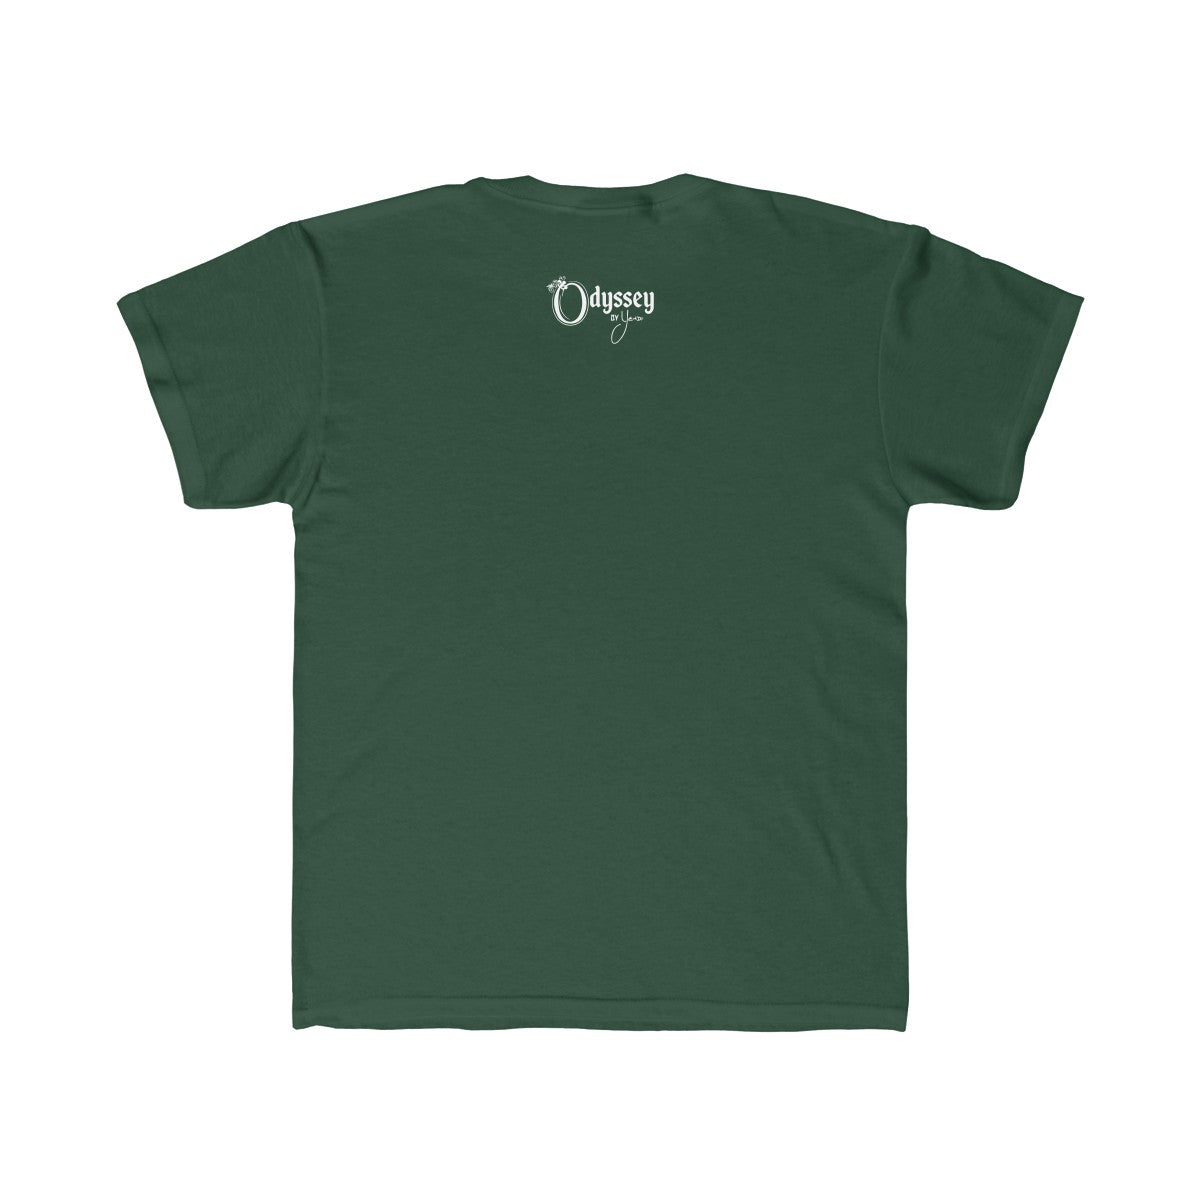 Odyssey I Love Him Kids Tee